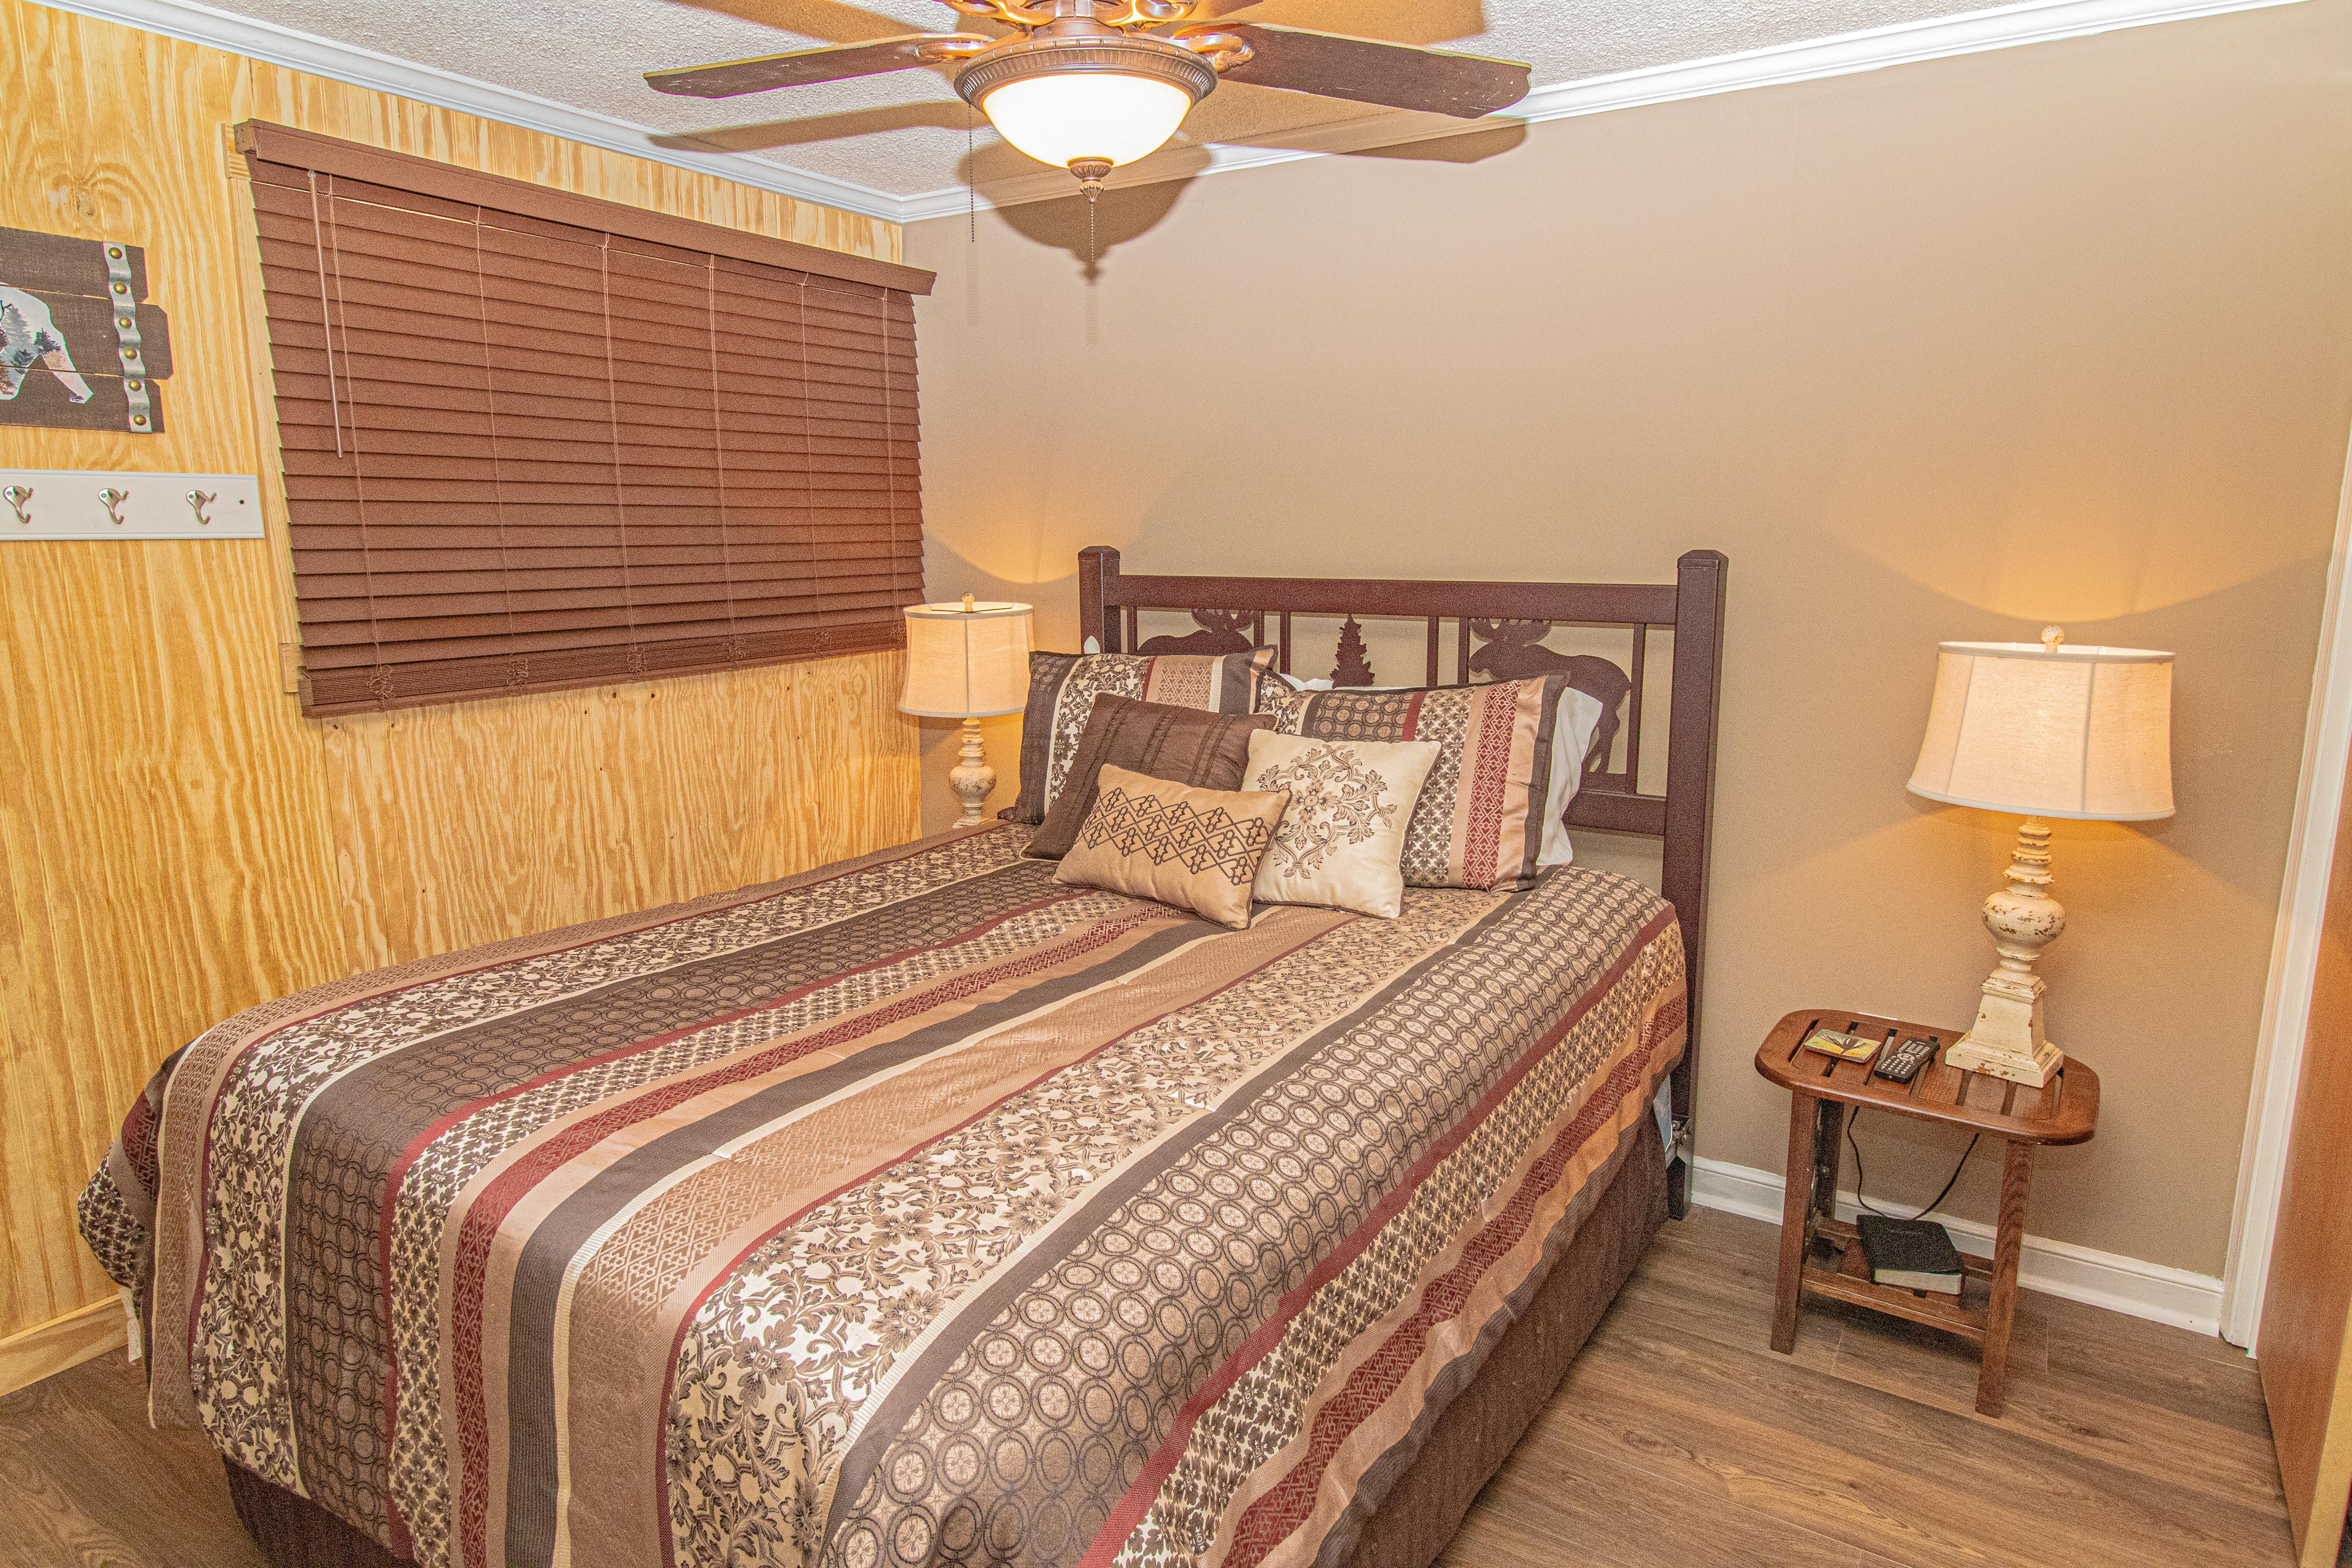 Second bedroom features queen-sized bed and wall-mounted TV